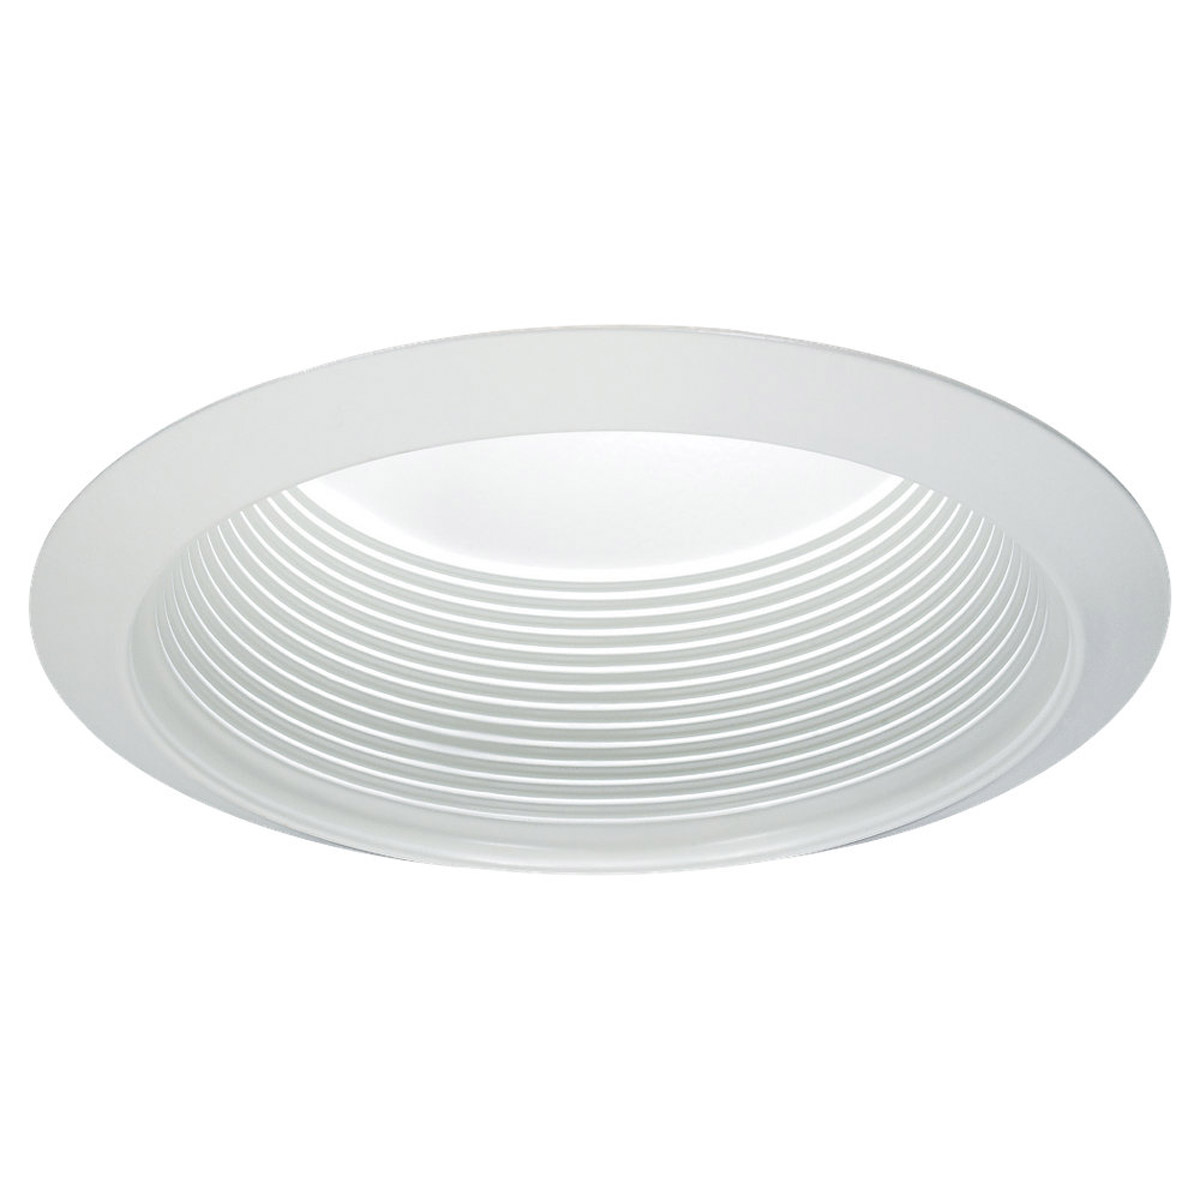 Sea Gull 11151AT-14 Signature White Recessed Trim in White Baffle photo